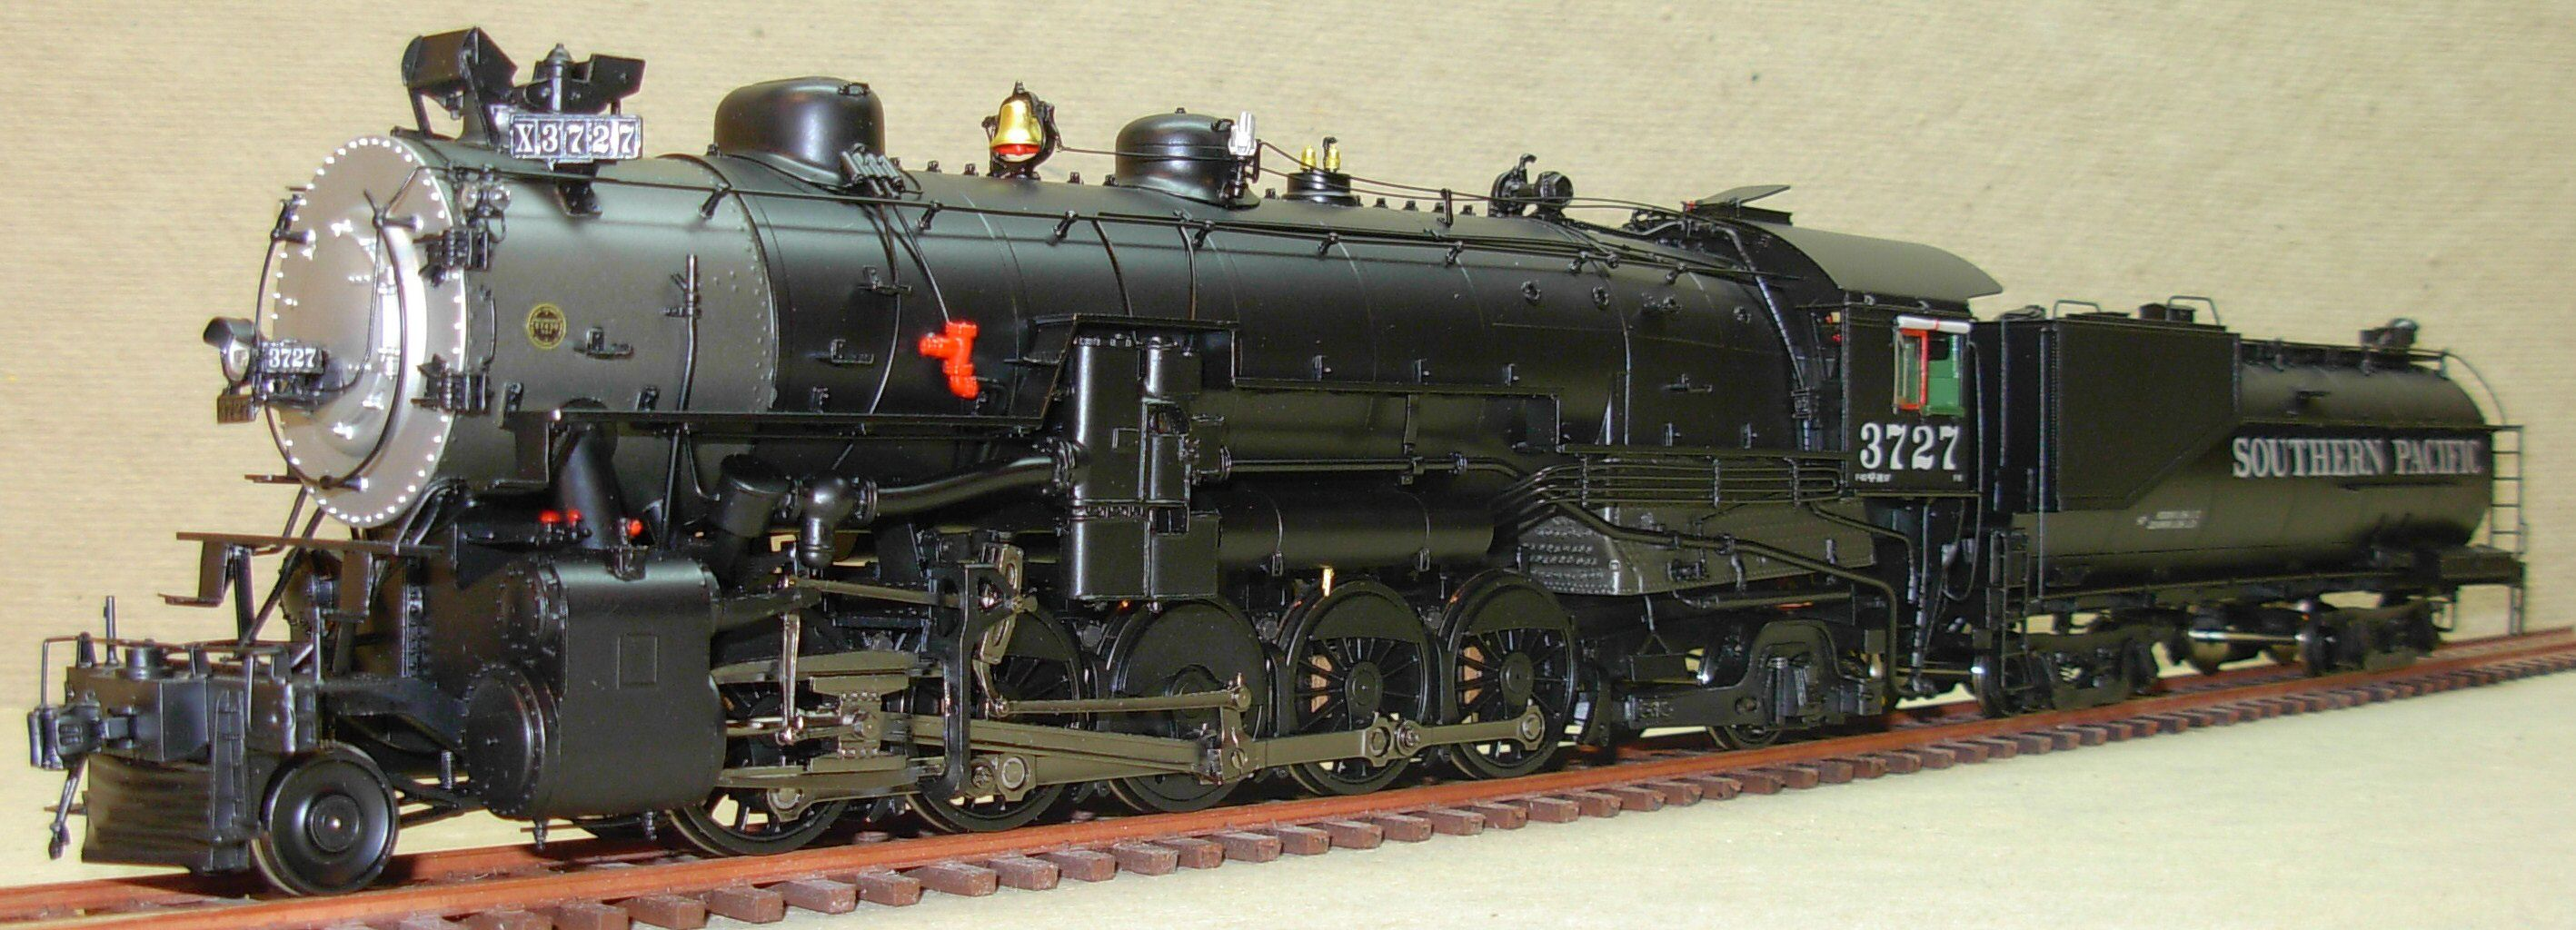 how to build a steam locomotive from scratch